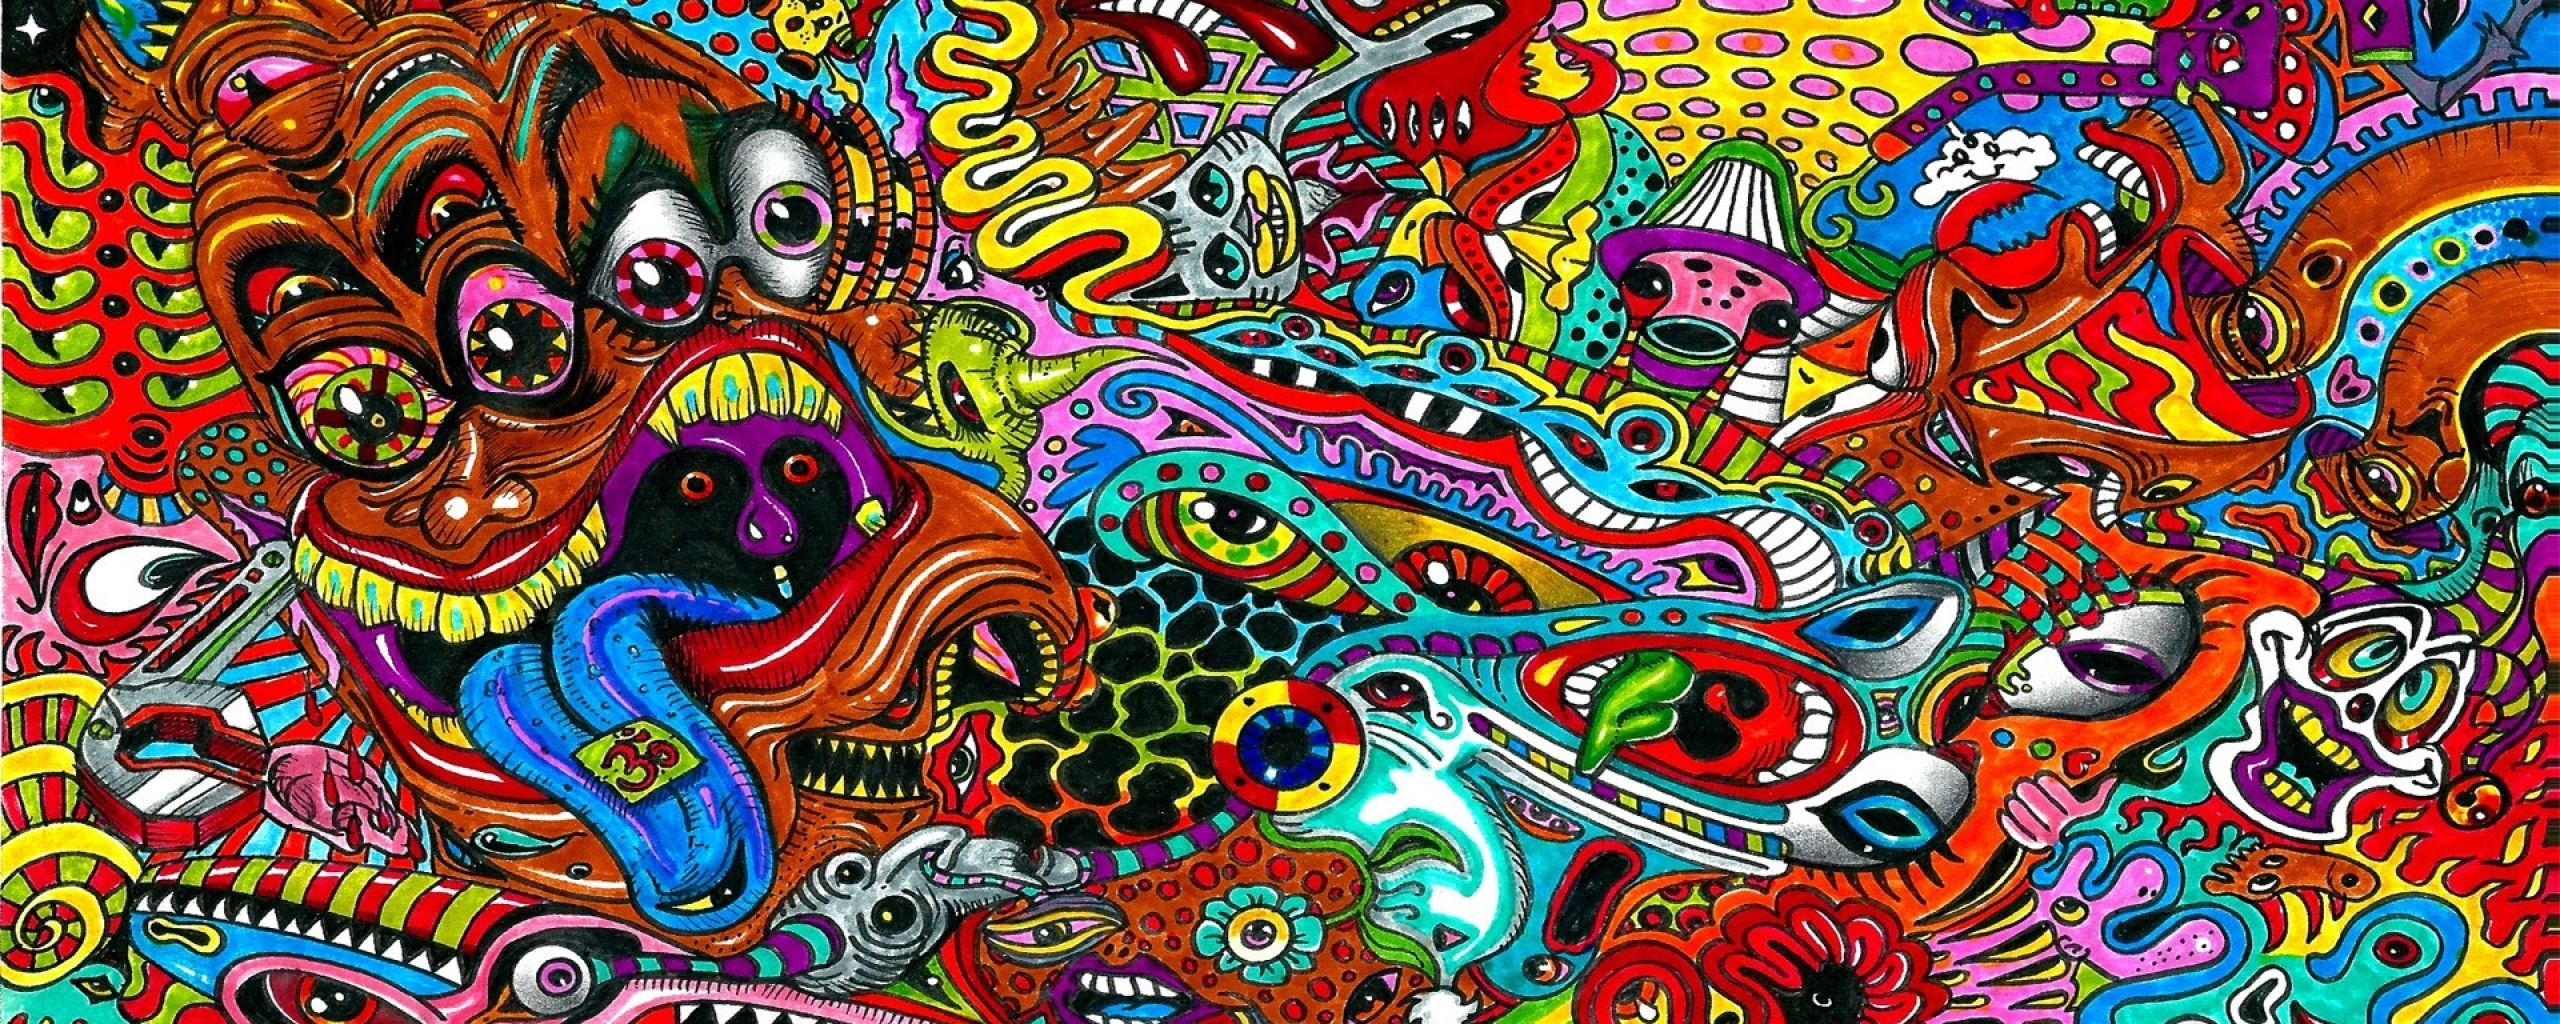 Psychedelic Wallpaper 2560x1024